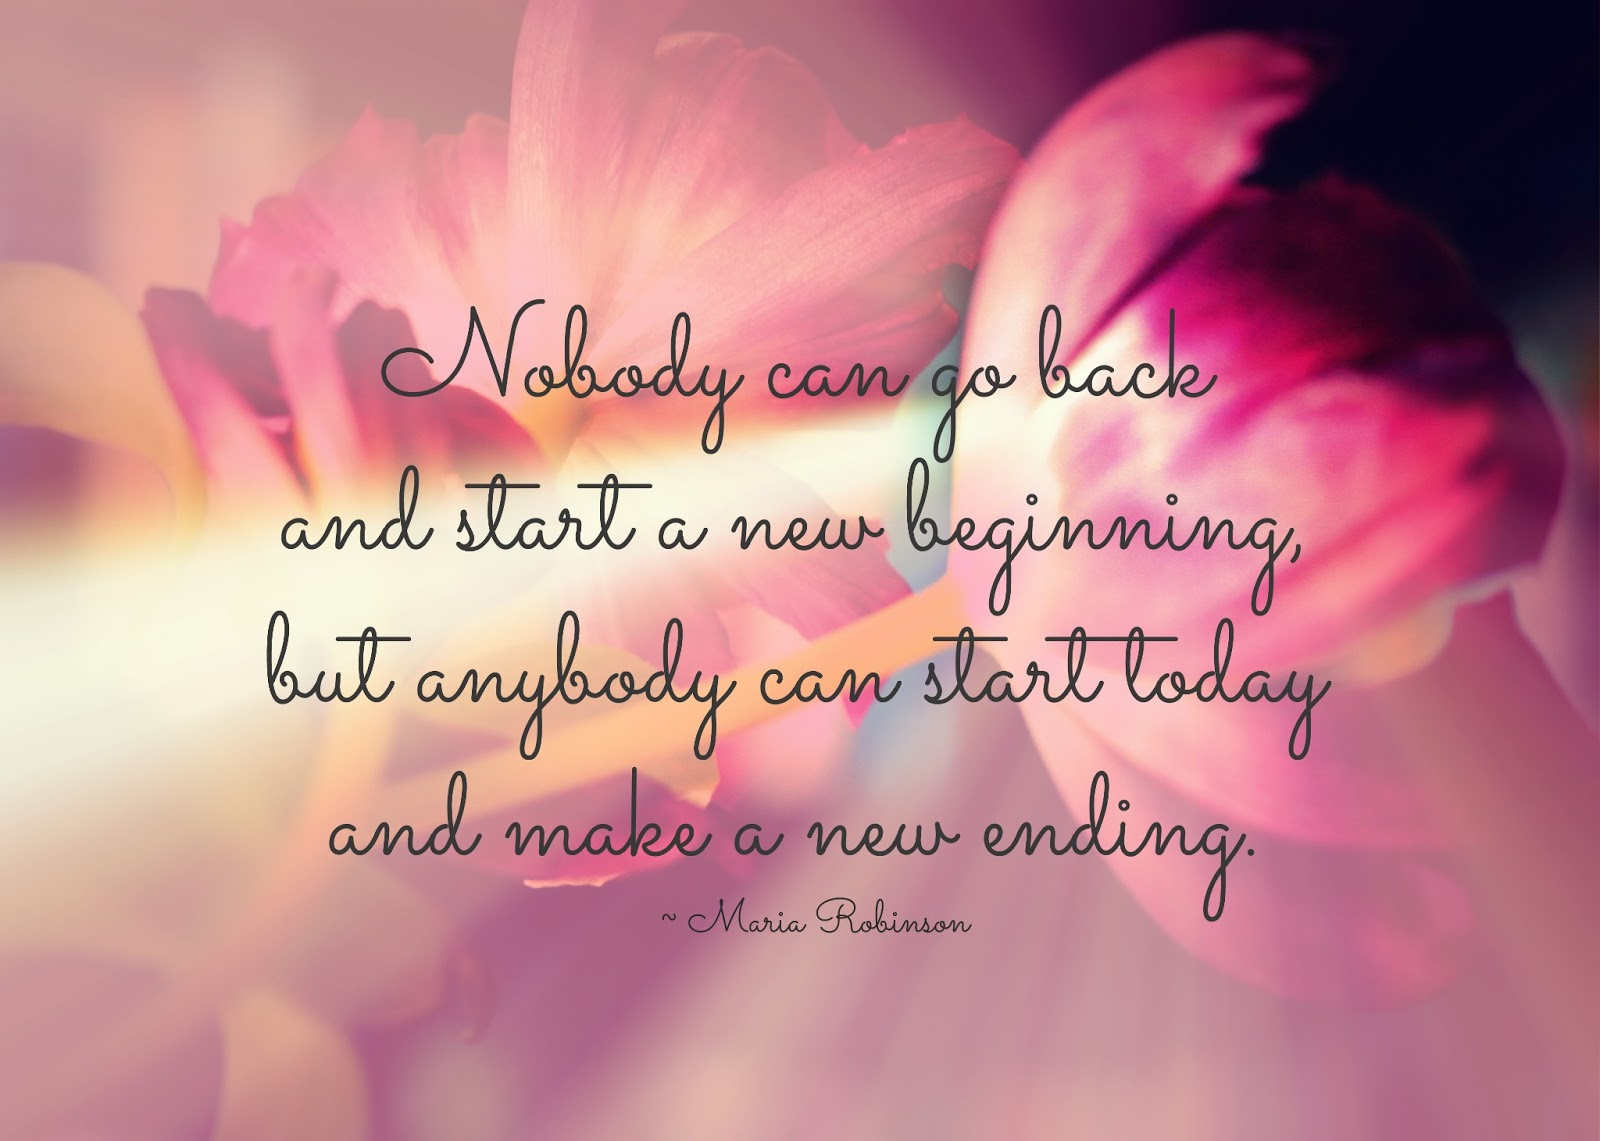 Literary Quotes About Friendship Friendship Quotes About New Beginnings Fresh Start Quotes